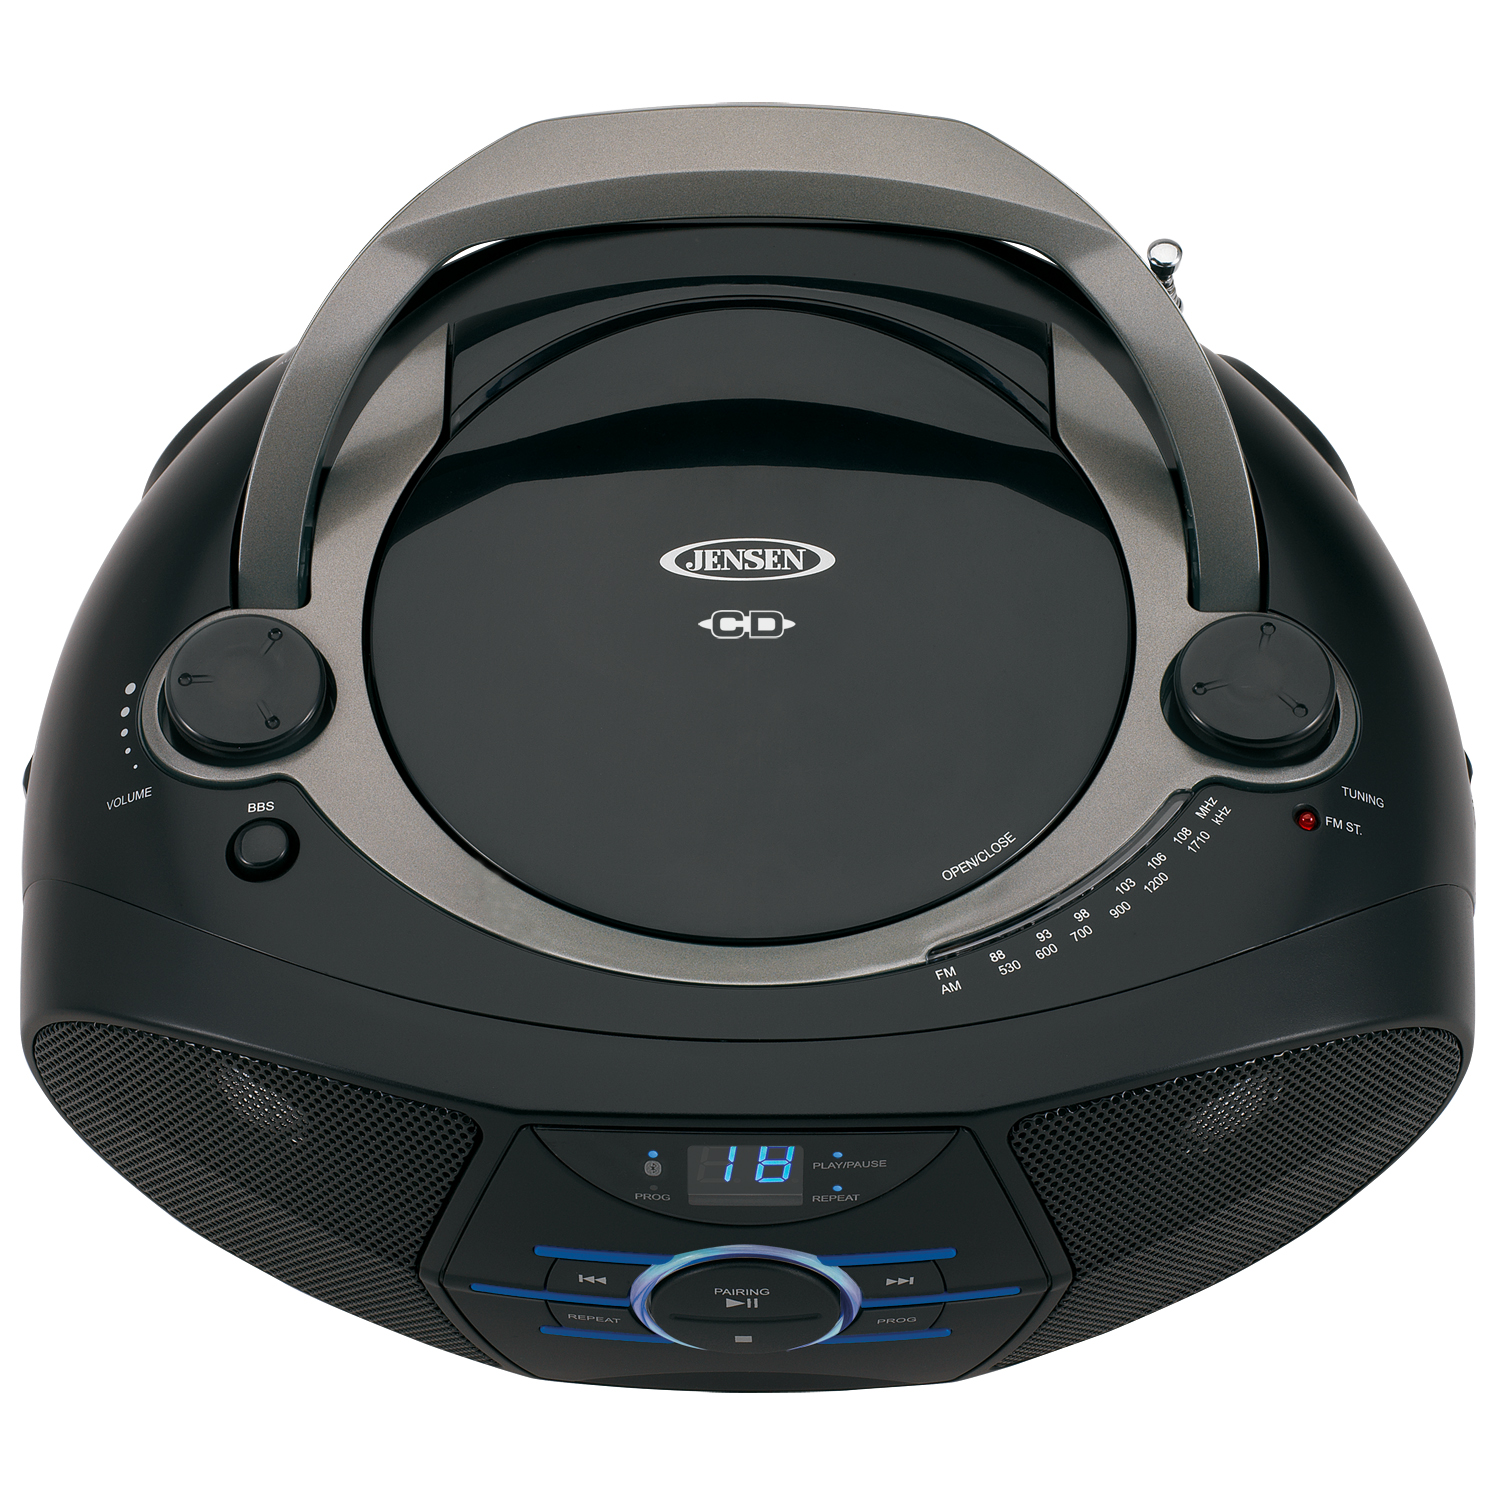 JENSEN CD-560 Portable Stereo CD Player with AM/FM Radio \u0026 Bluetooth - Walmart.com